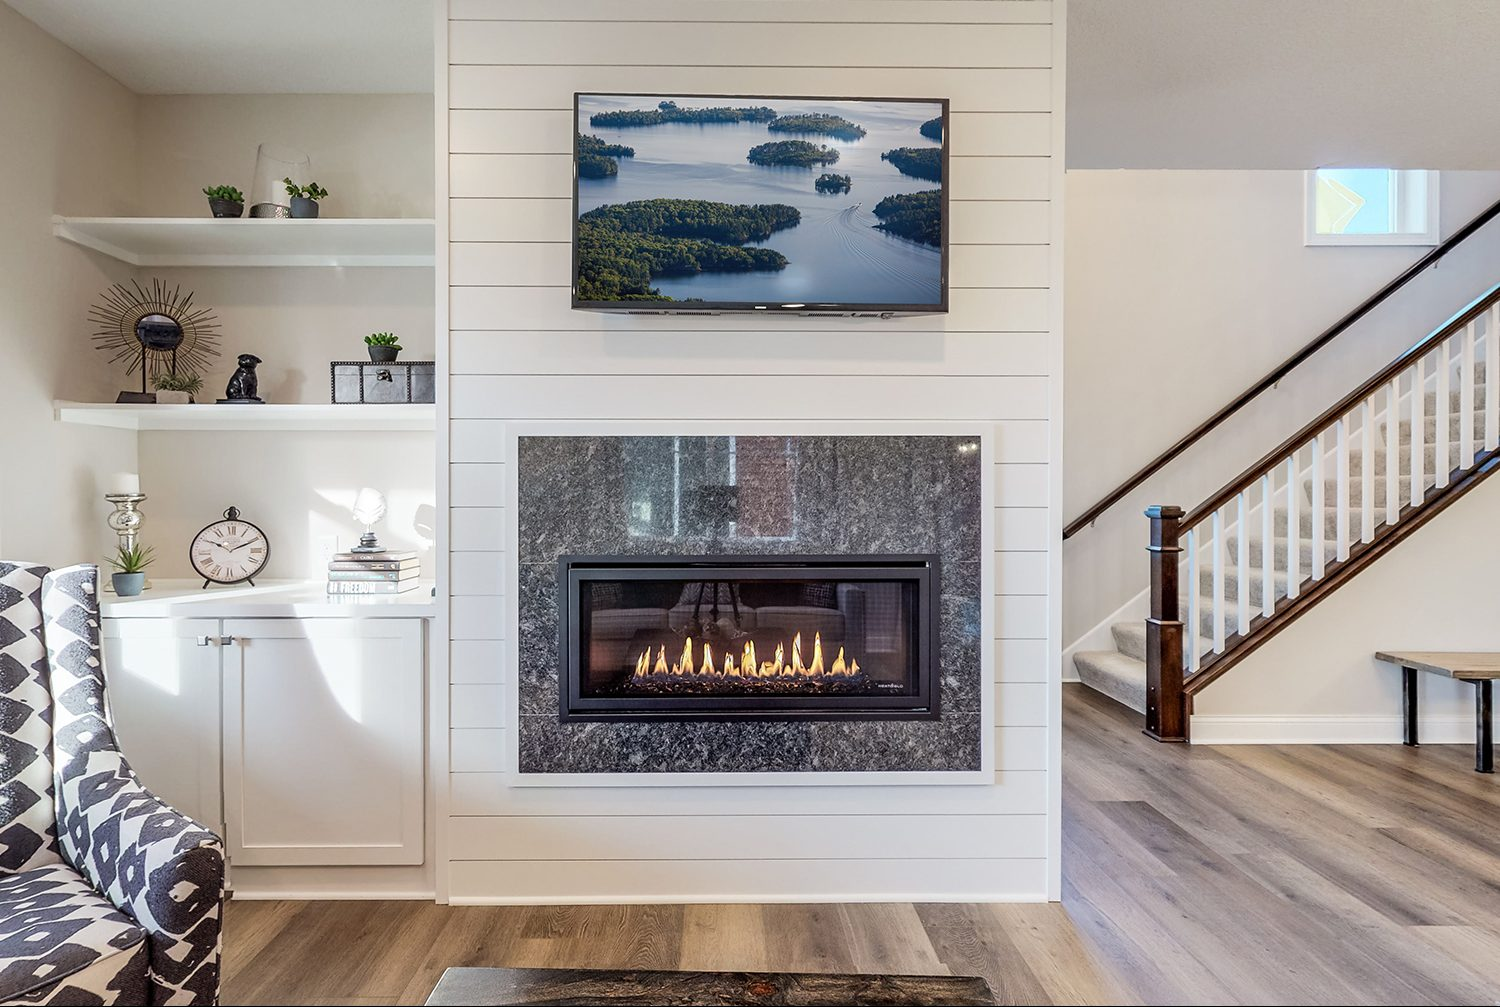 Modern living room with fireplace and accent shiplap siding designed by Godden Sudik Architects